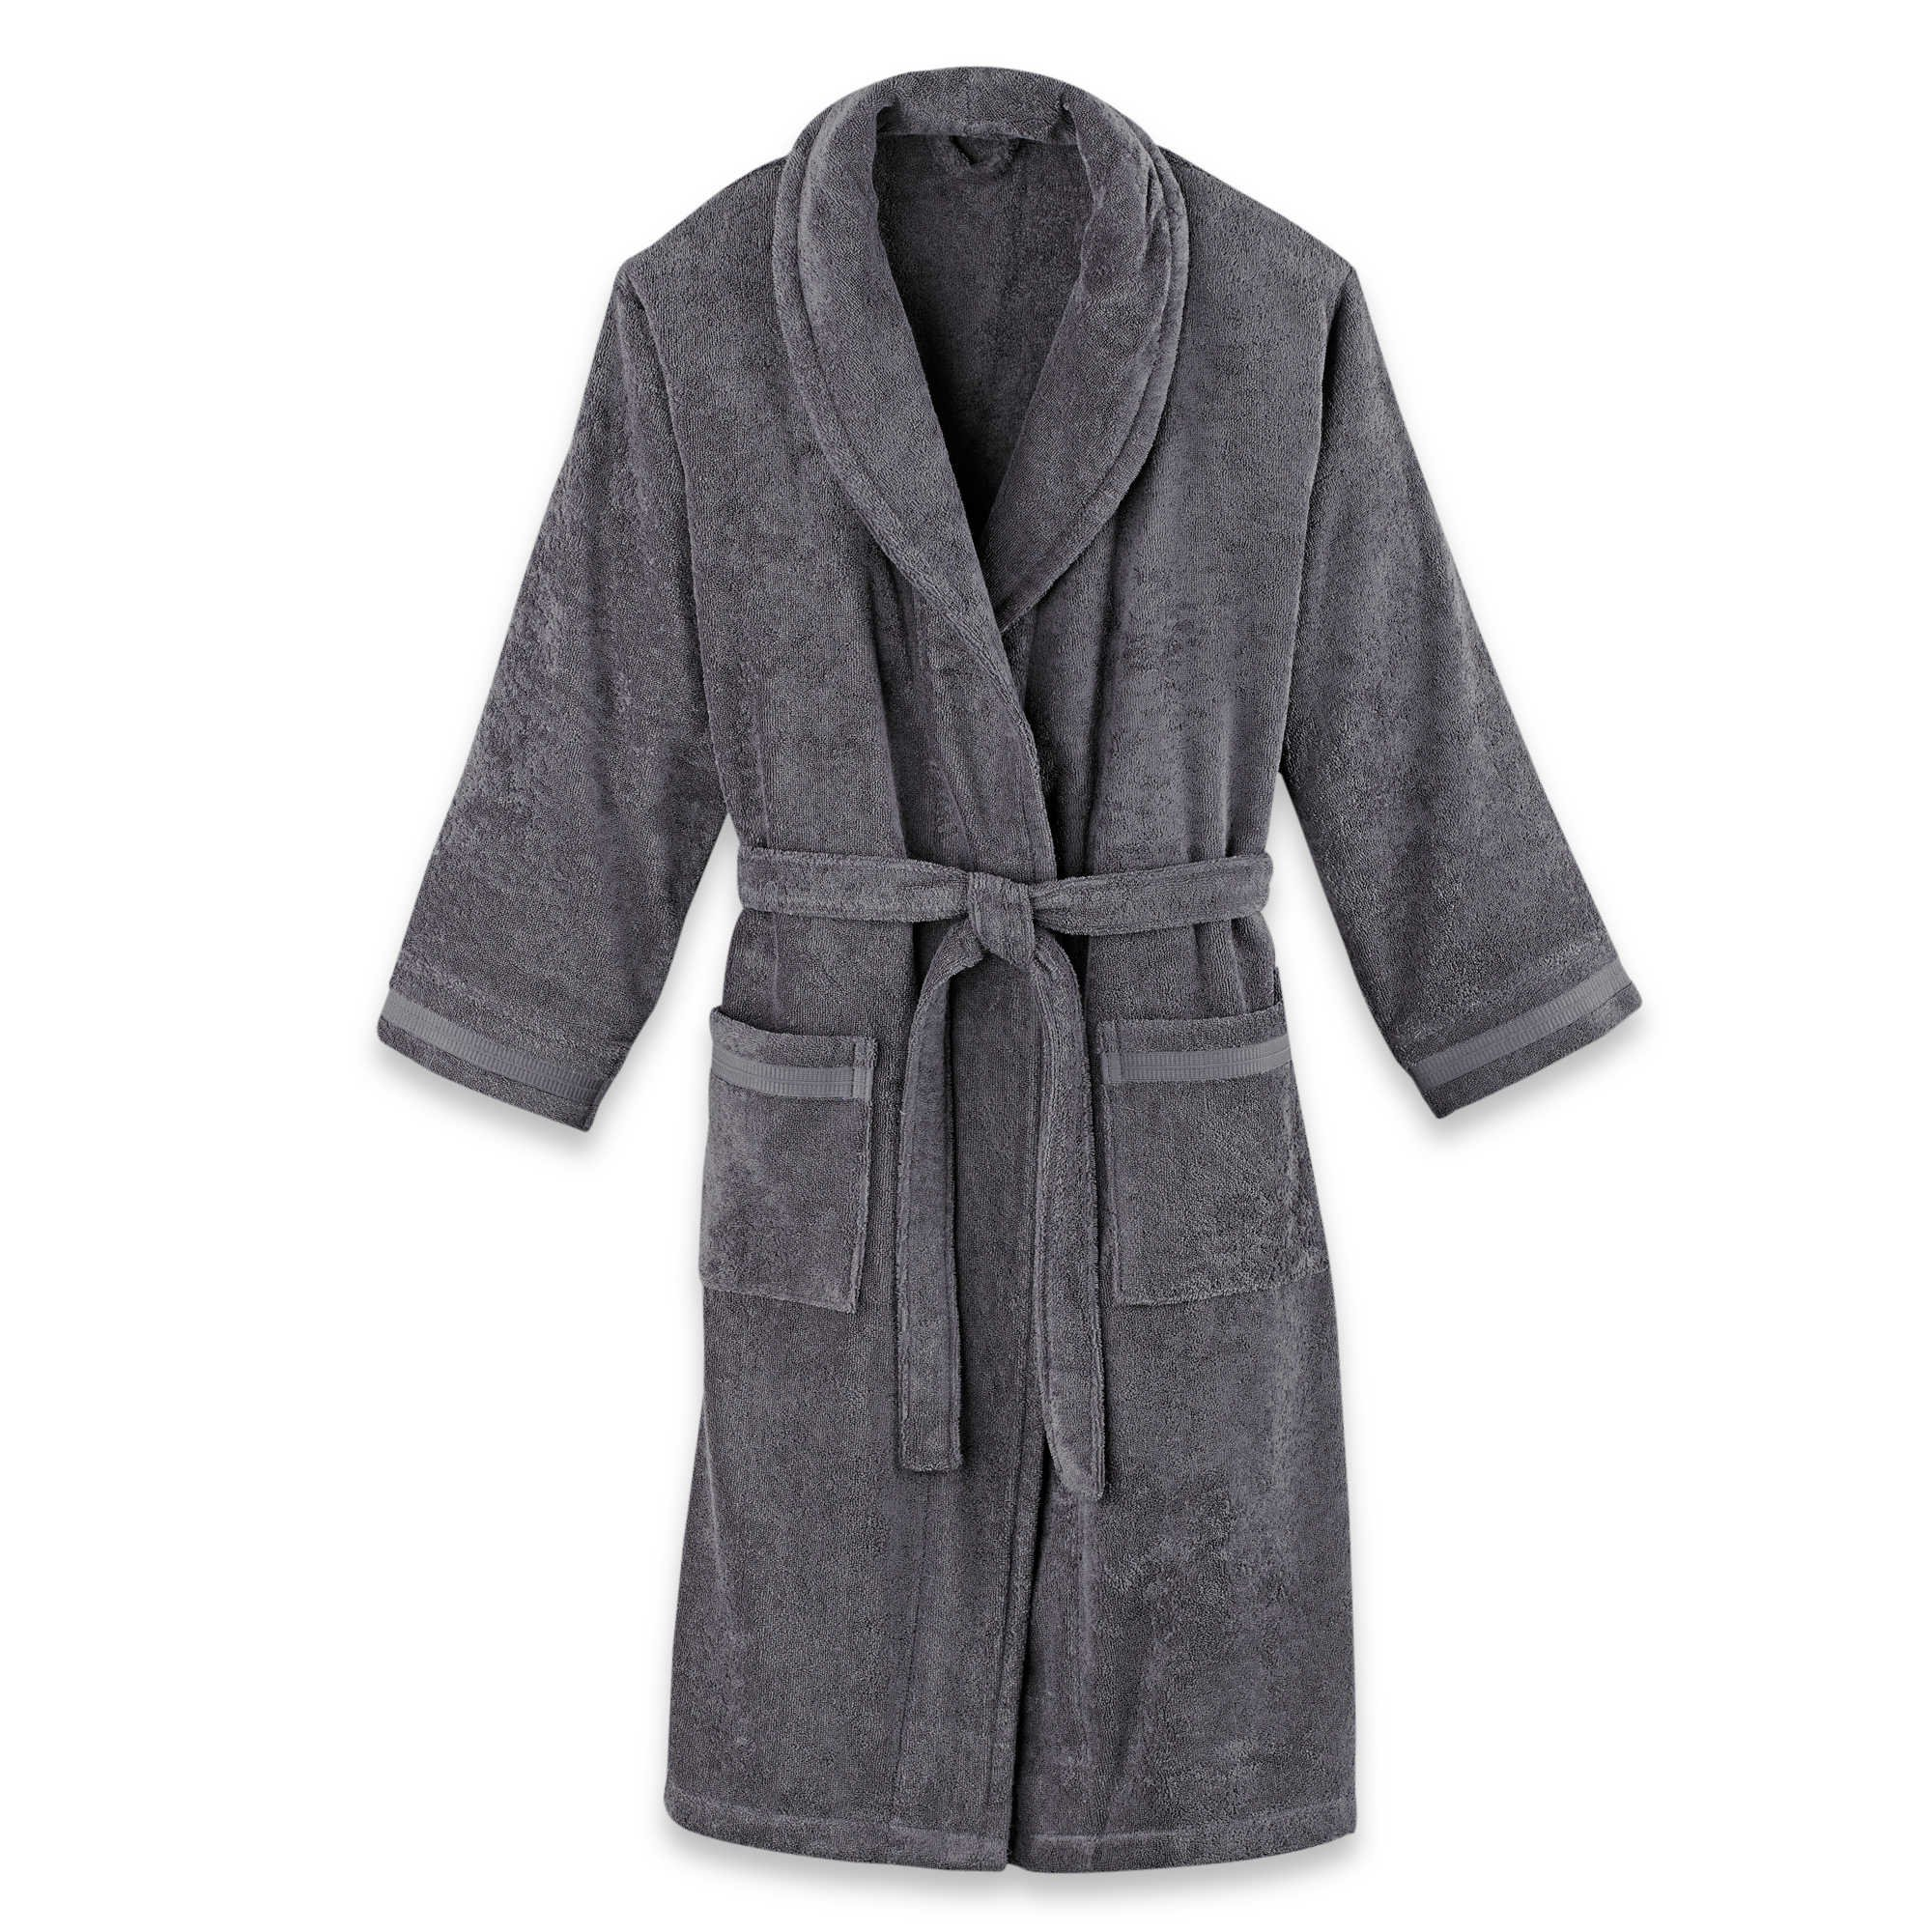 Frette at Home Size Large/Extra Unisex Milano Terry Bathrobe in Anthracite